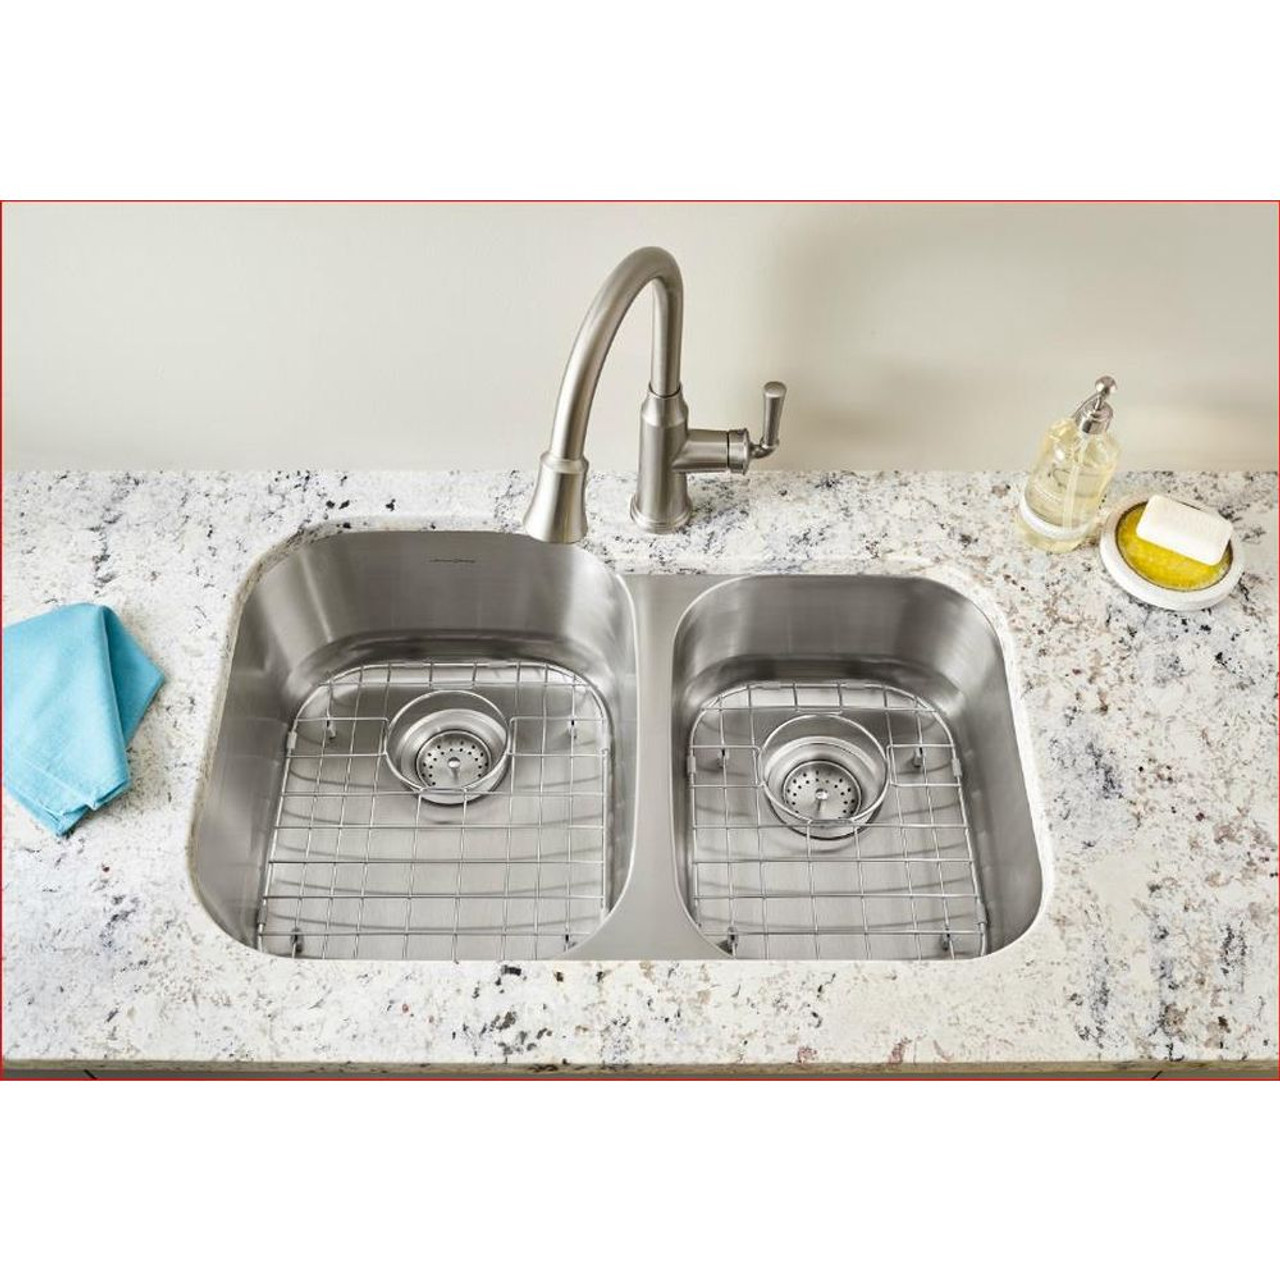 American Standard Portsmouth 31 5 In Double Basin Kitchen Sink In Stainless 18cr 9322100s 075 Online Bath1 Com